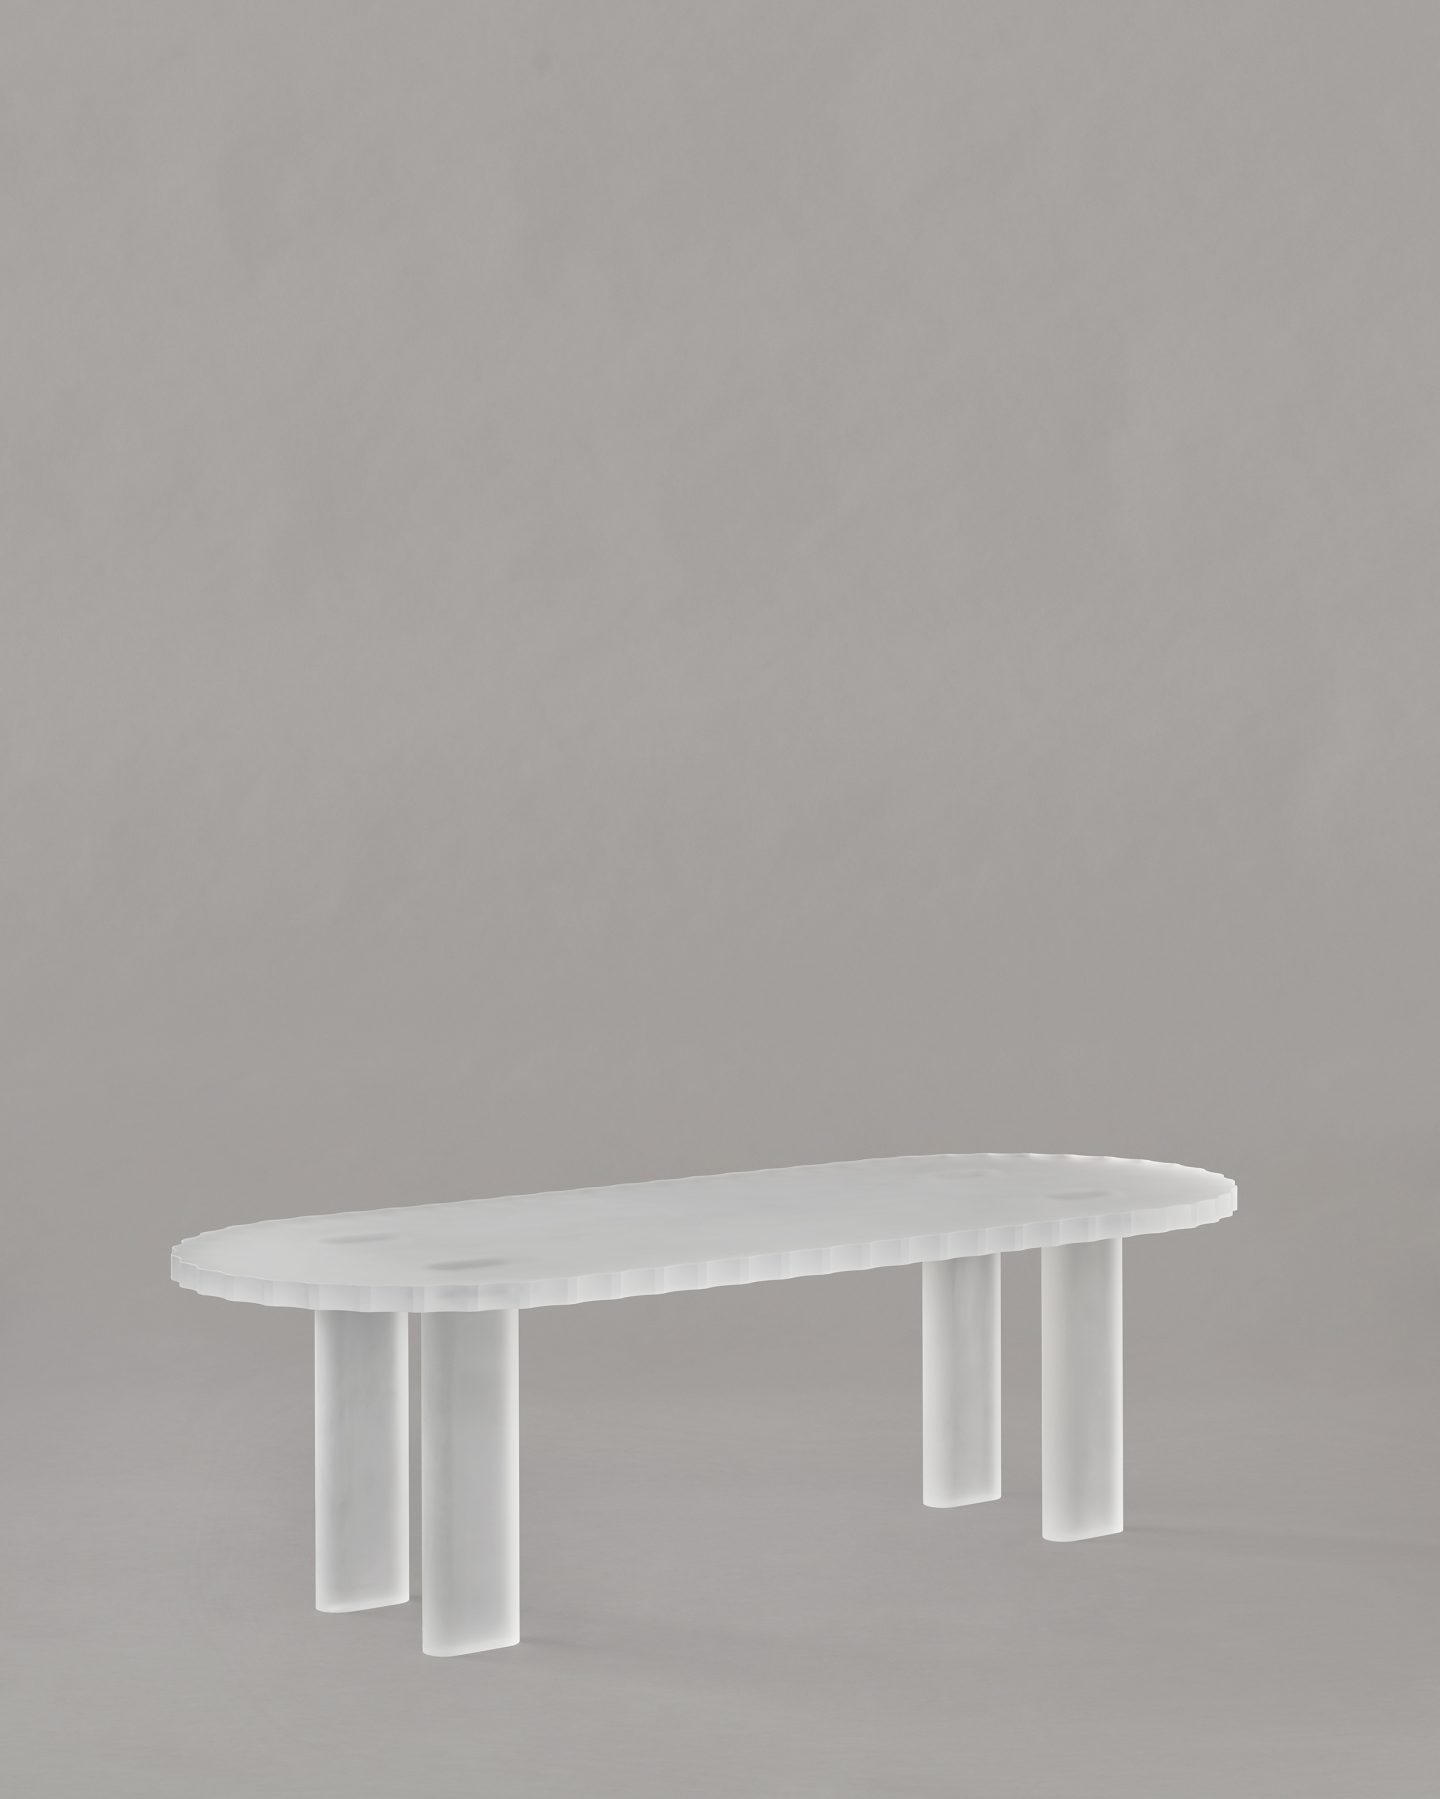 IGNANT-Design-Balzano-Antica-DiningTable-2